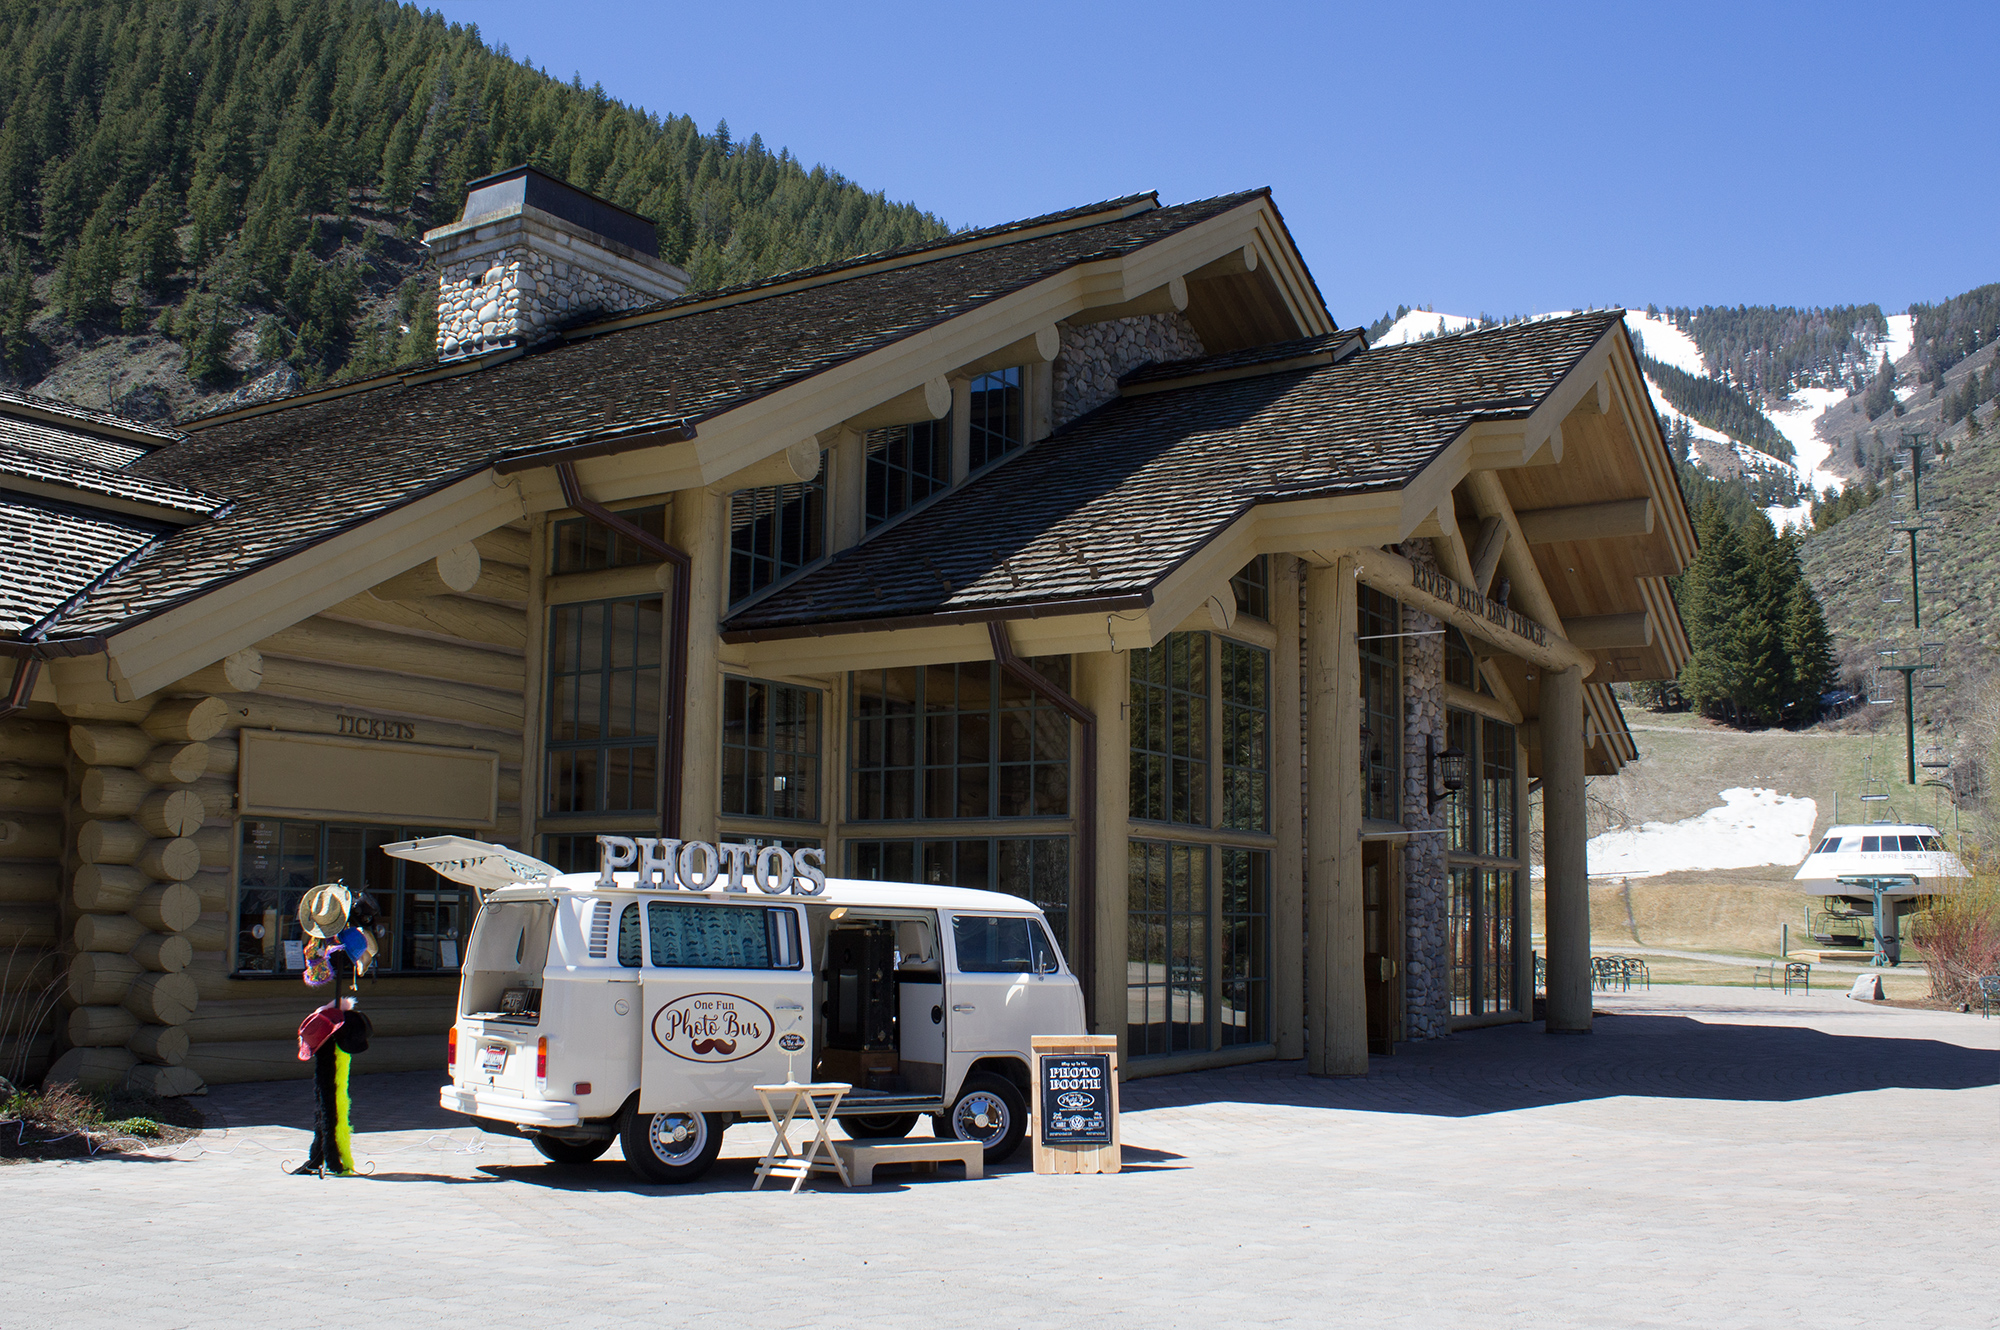 Sun Valley Photo Bus